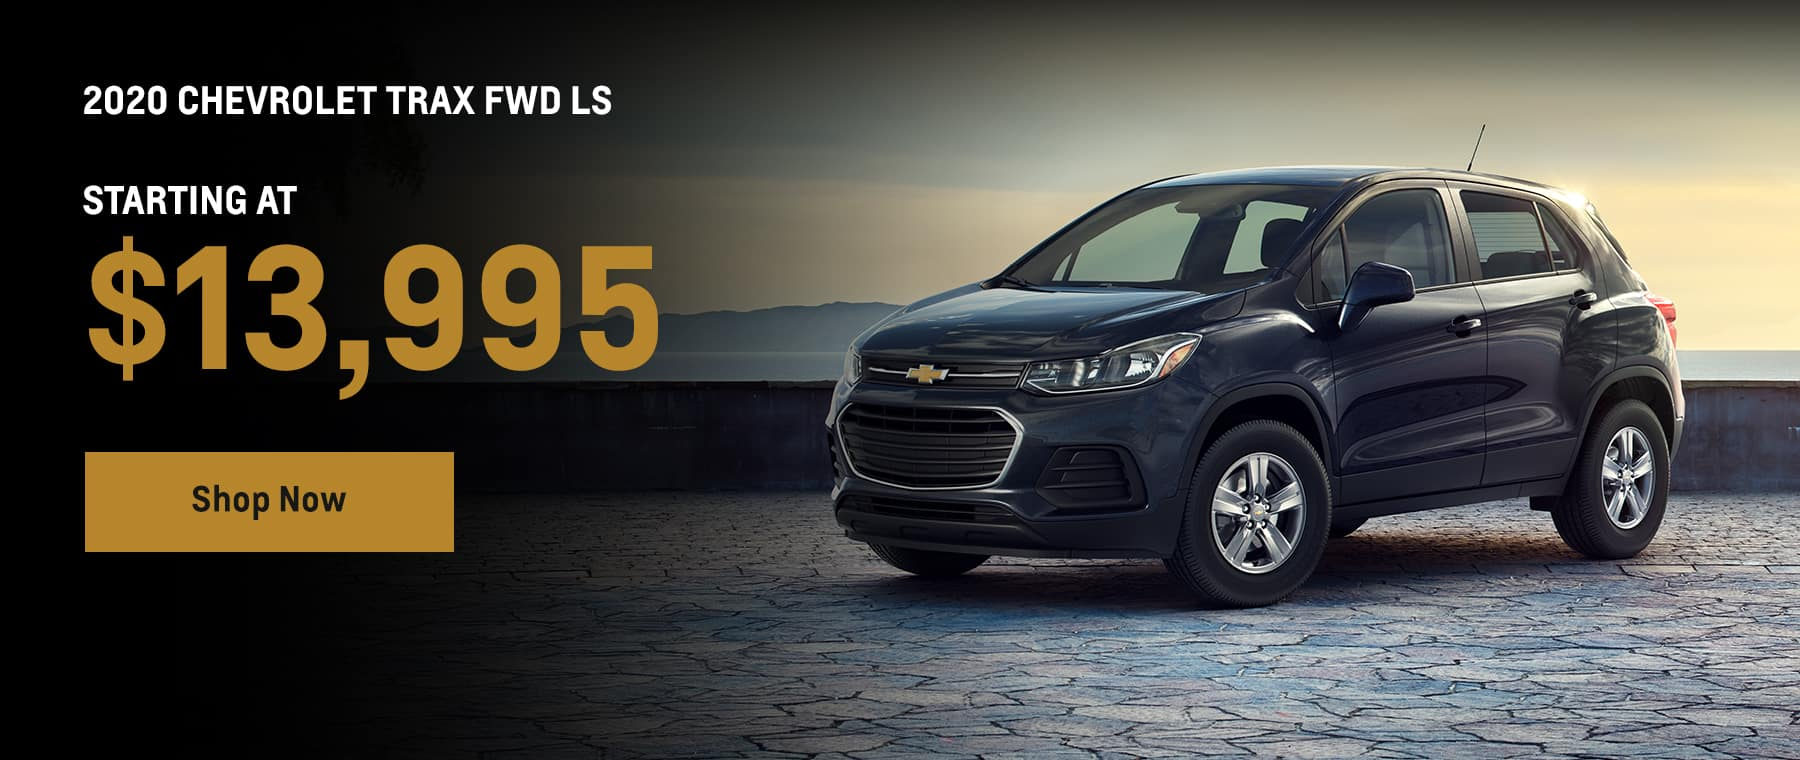 2020 Chevrolet Trax starting at $13,995